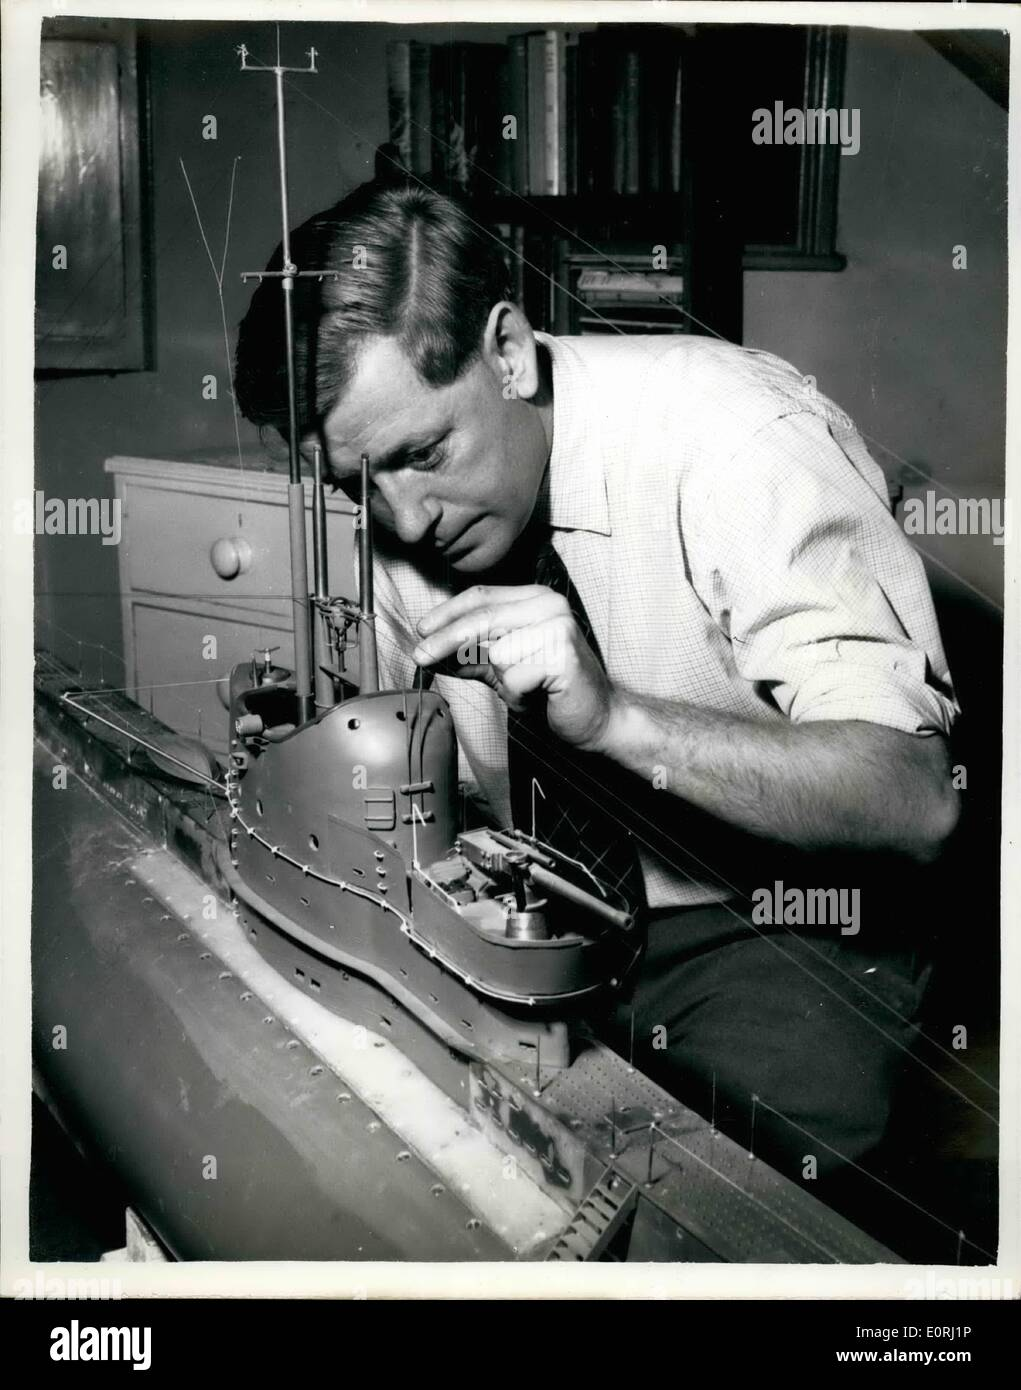 Nov. 11, 1959 - TEN FOOT WORKING MODEL OP A SUBMARINE BUILT5 NOV 1959 IN A BEDROOM, .IT WILL ACTUALLY FIRE REAL - Stock Image